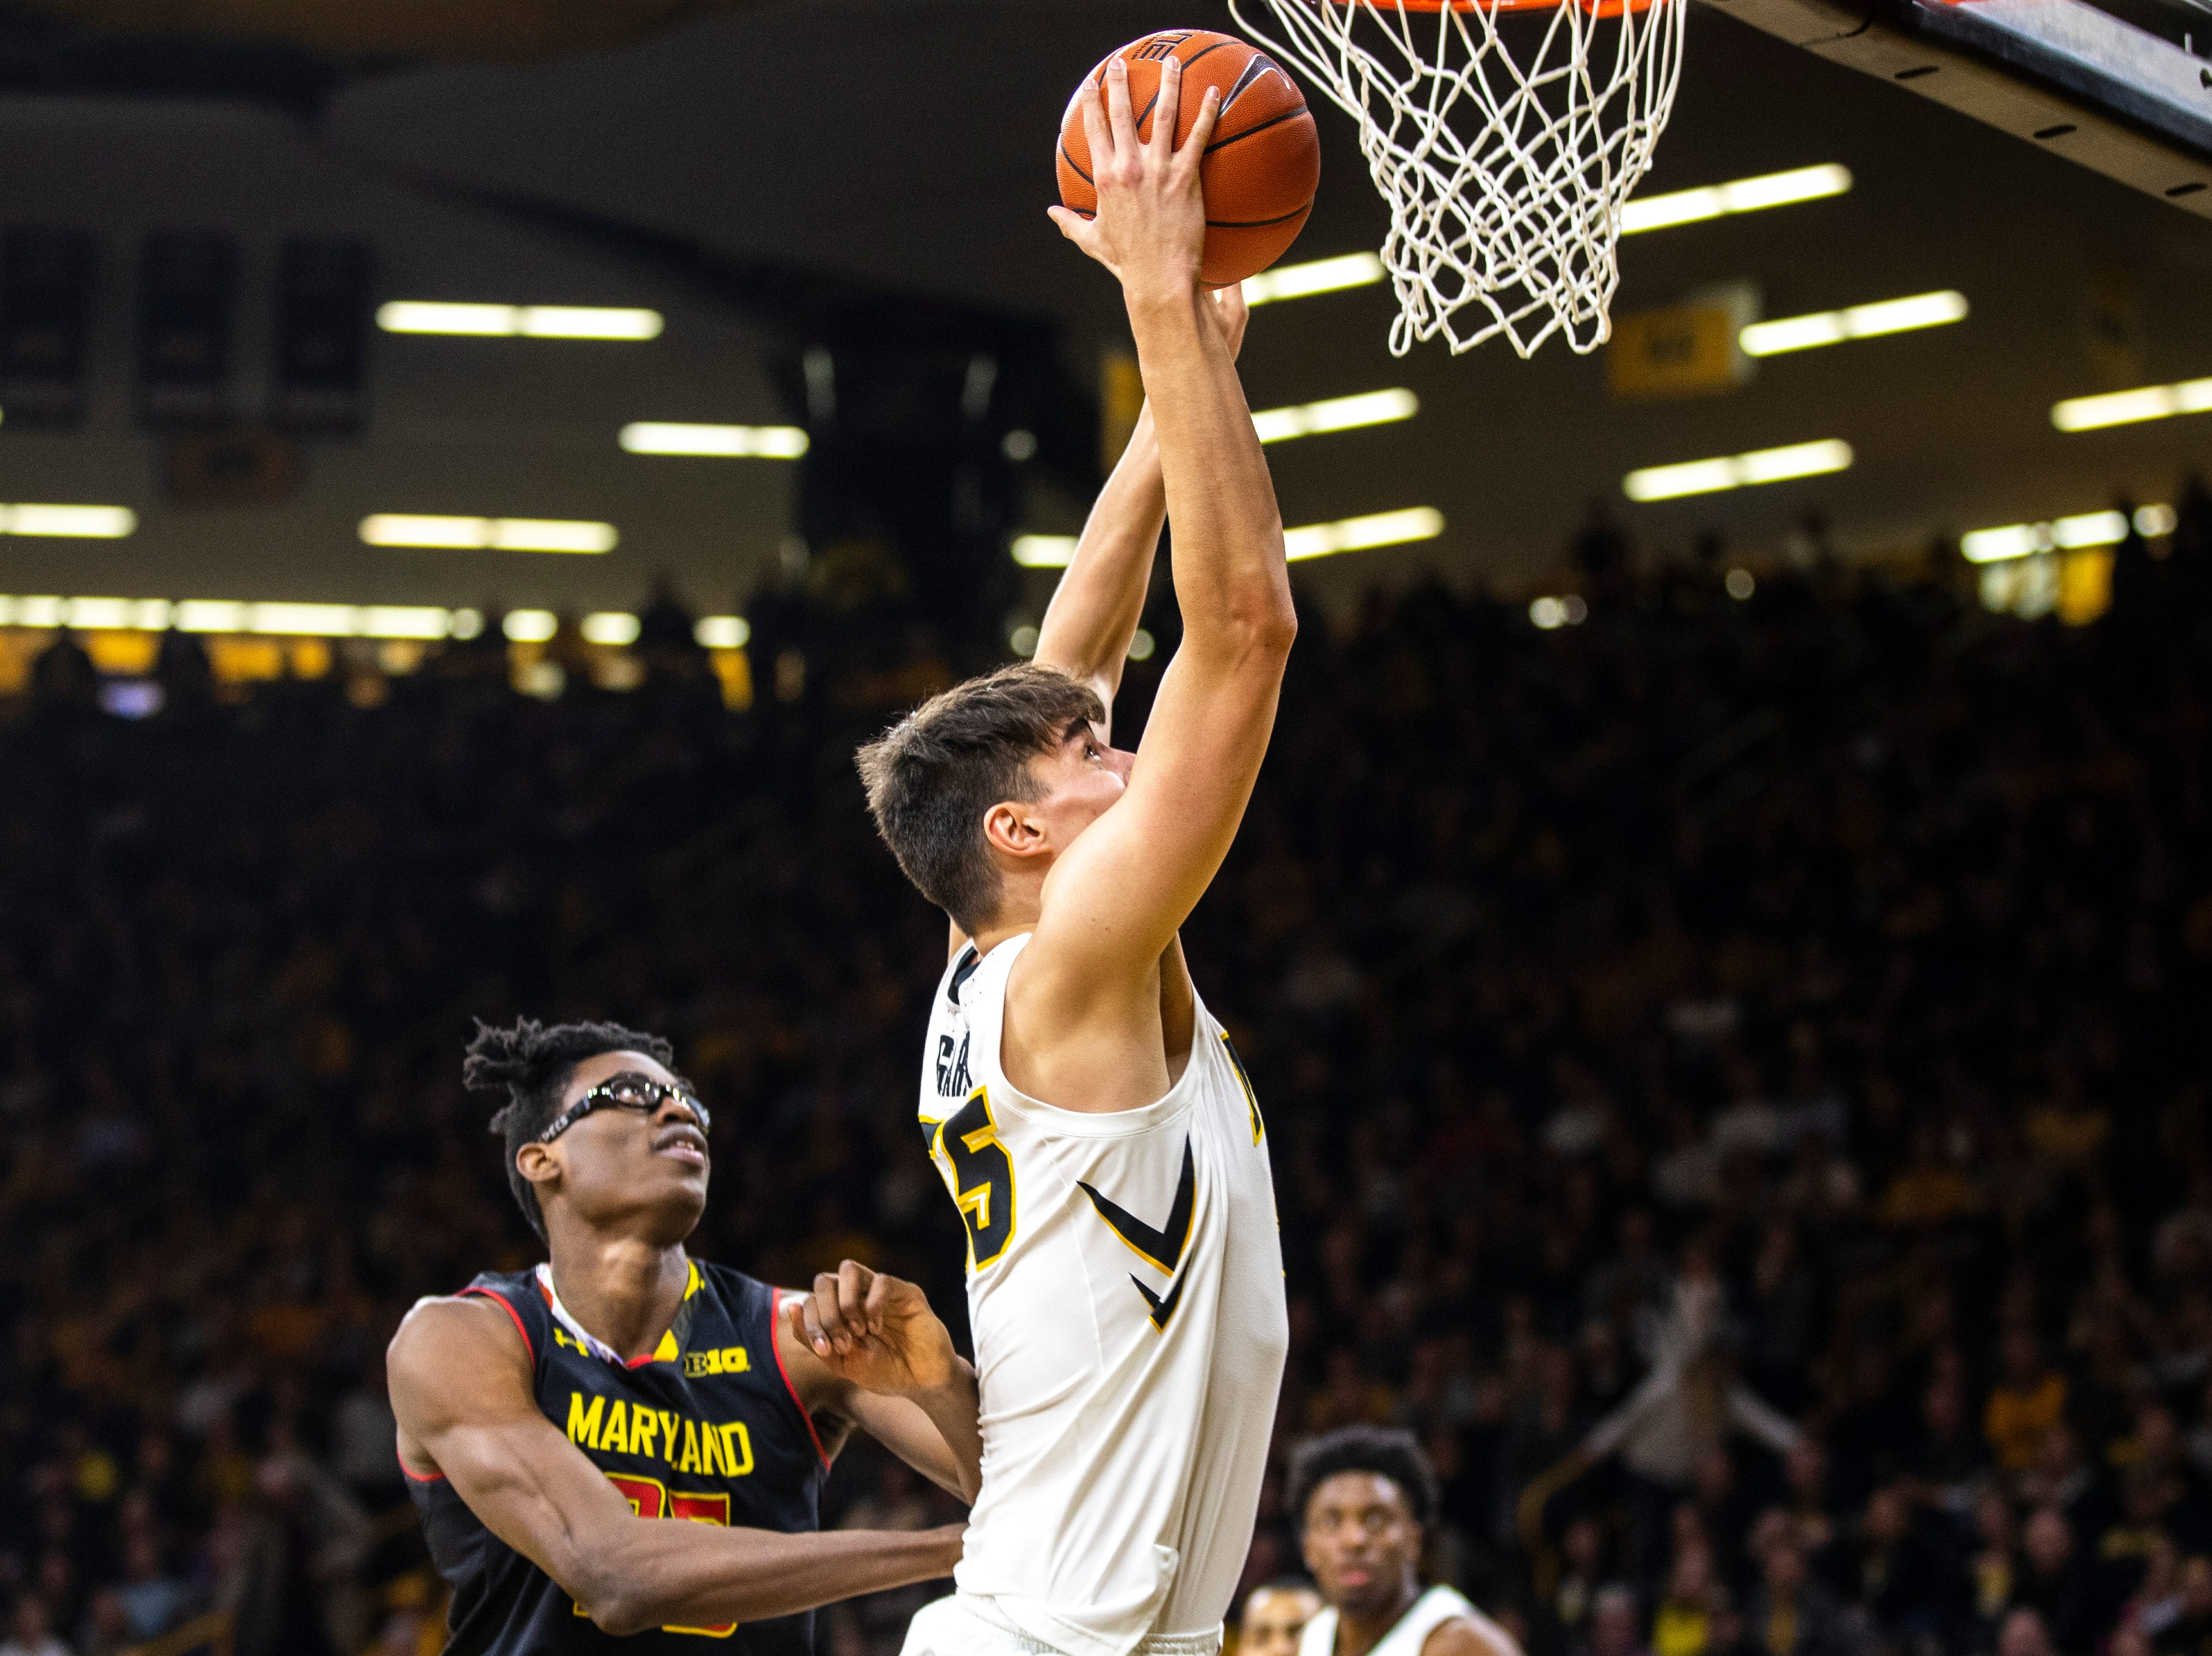 Iowa center Luka Garza (55) grabs a ball for a put-back while Maryland forward Jalen Smith, left, defends during a NCAA Big Ten Conference men's basketball game on Tuesday, Feb. 19, 2019 at Carver-Hawkeye Arena in Iowa City, Iowa.